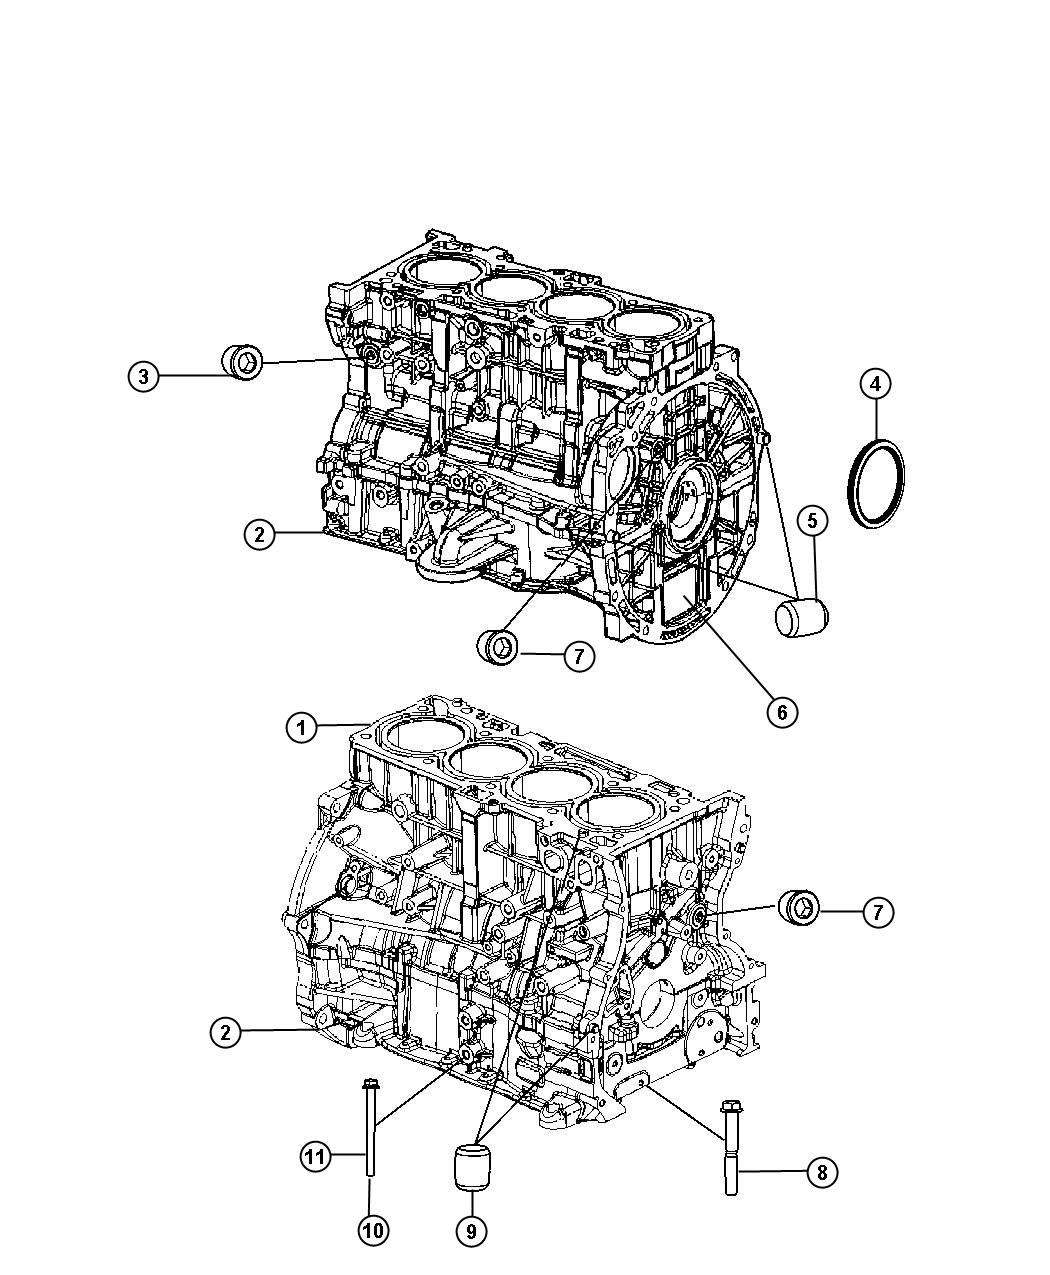 2010 Dodge Journey Engine Parts Diagram, 2010, Free Engine